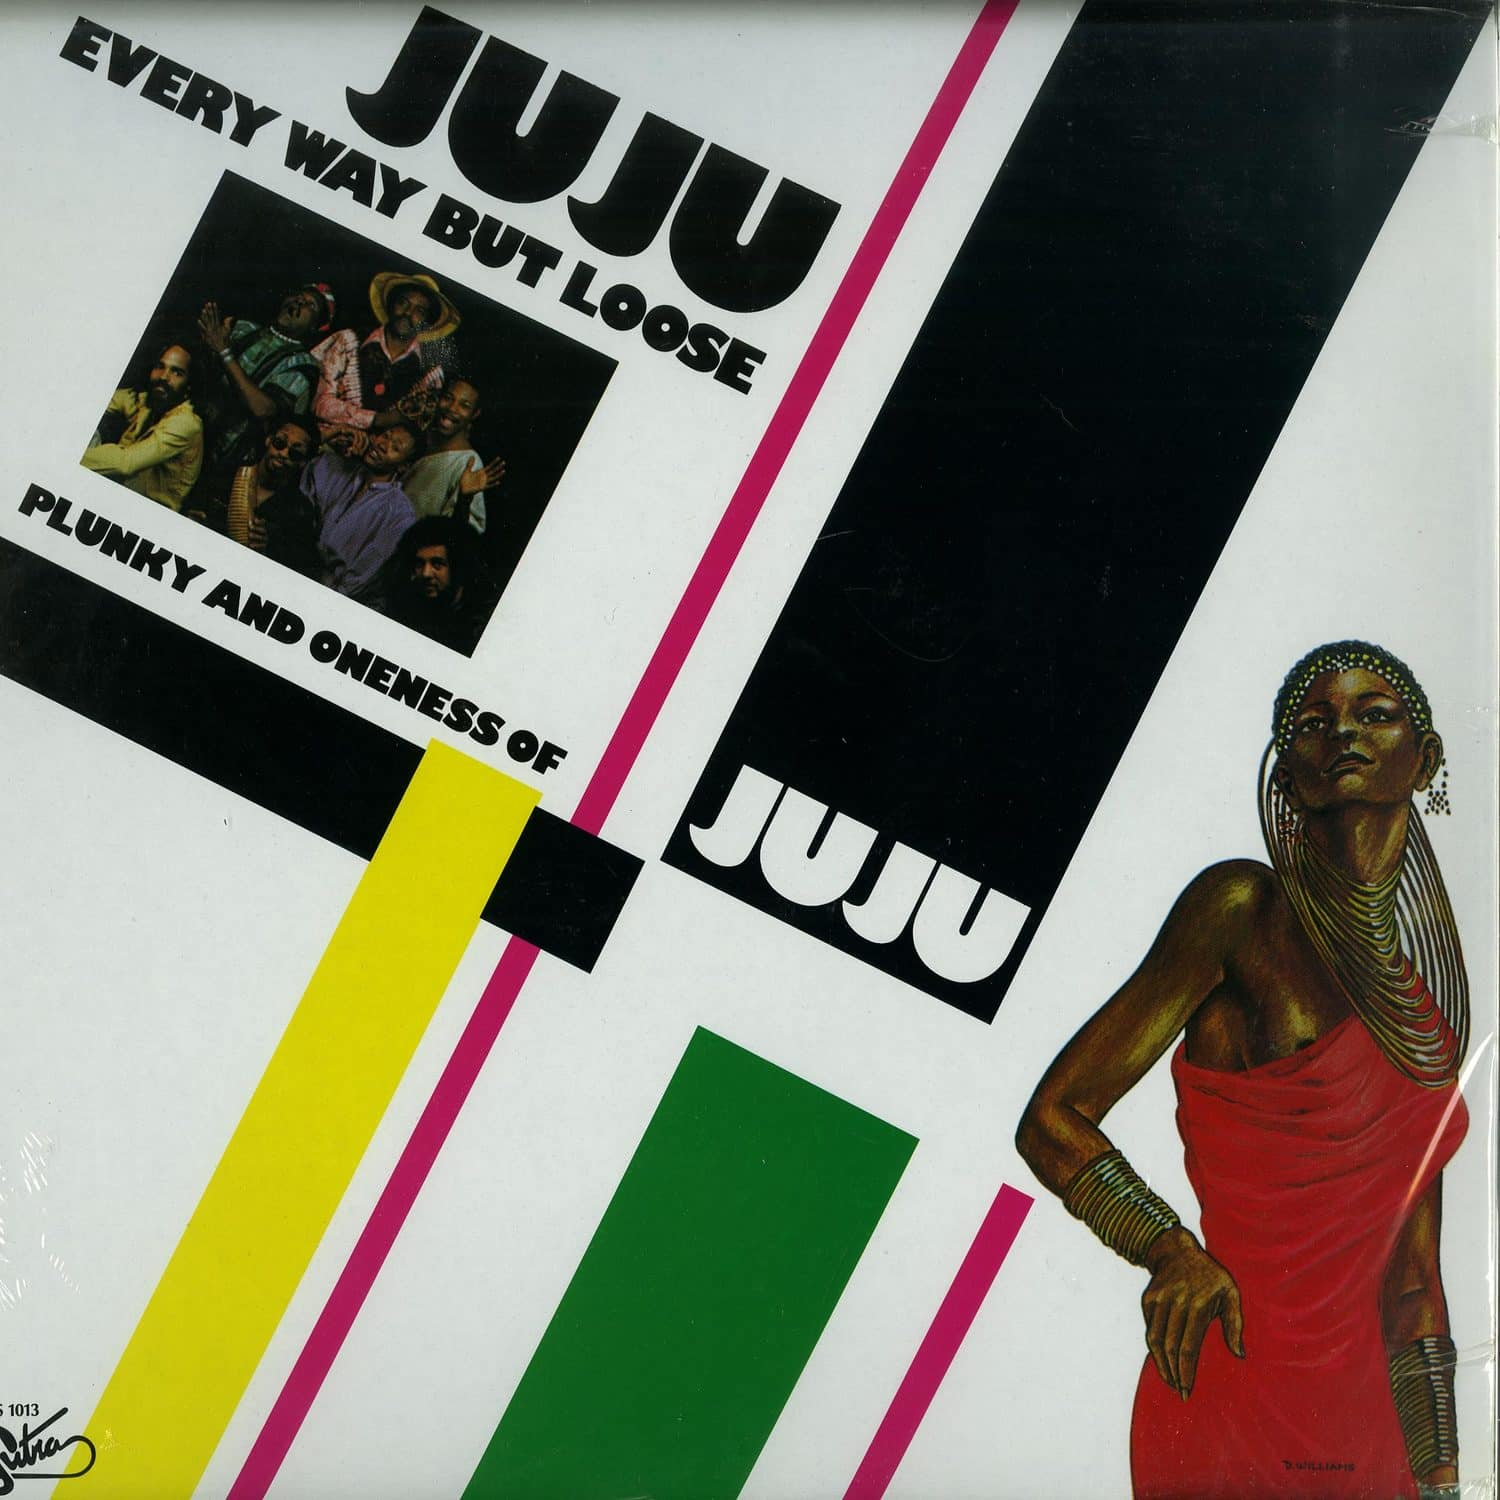 Plunky & Oneness Of Juju - EVERY WAY BUT LOOSE